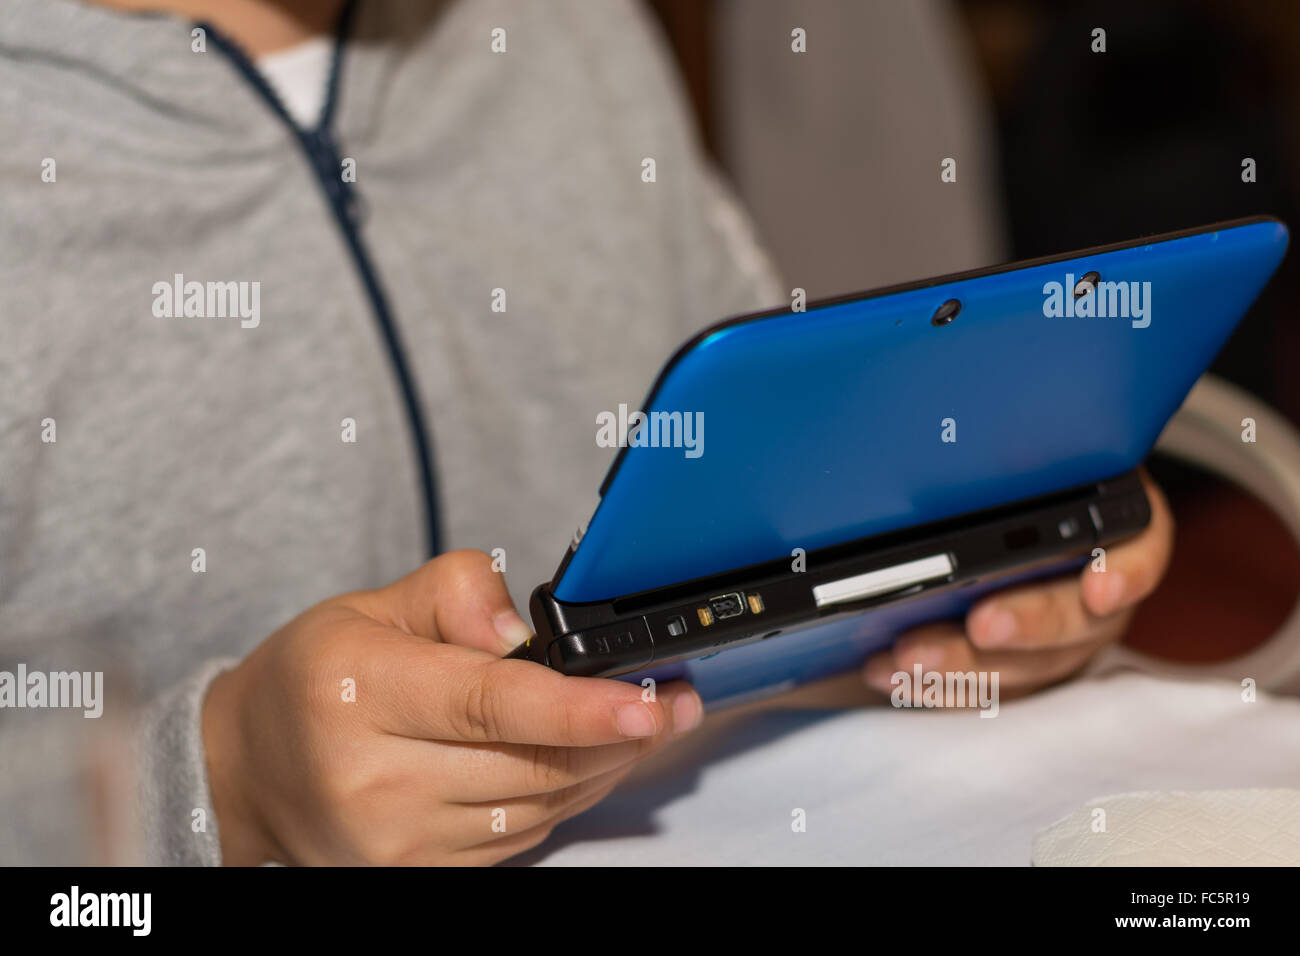 Child with portable games console - Stock Image